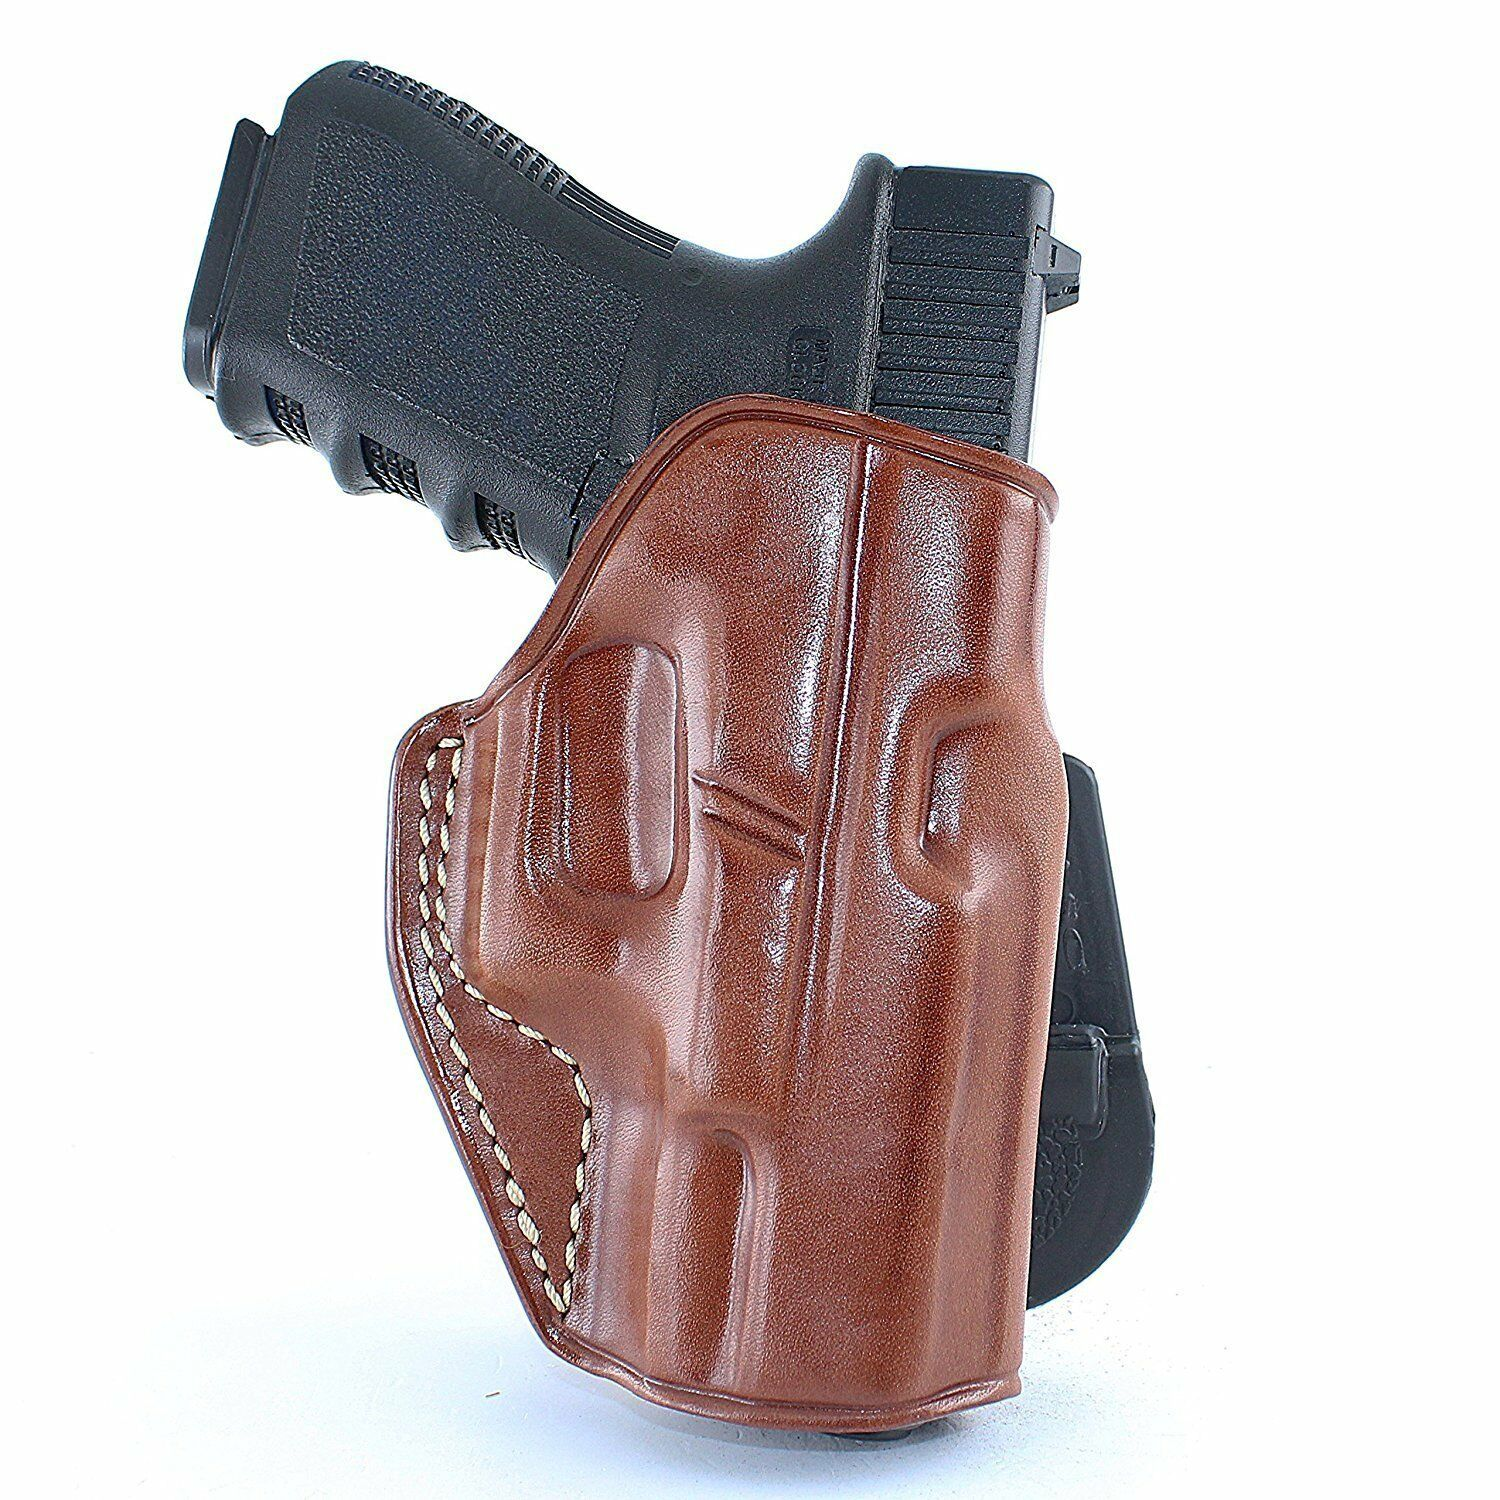 PADDLE HOLSTER FOR BERSA PRO 9CC 380 9MM/40 ULTRA COM 17RD HI CAP PO RIGHT